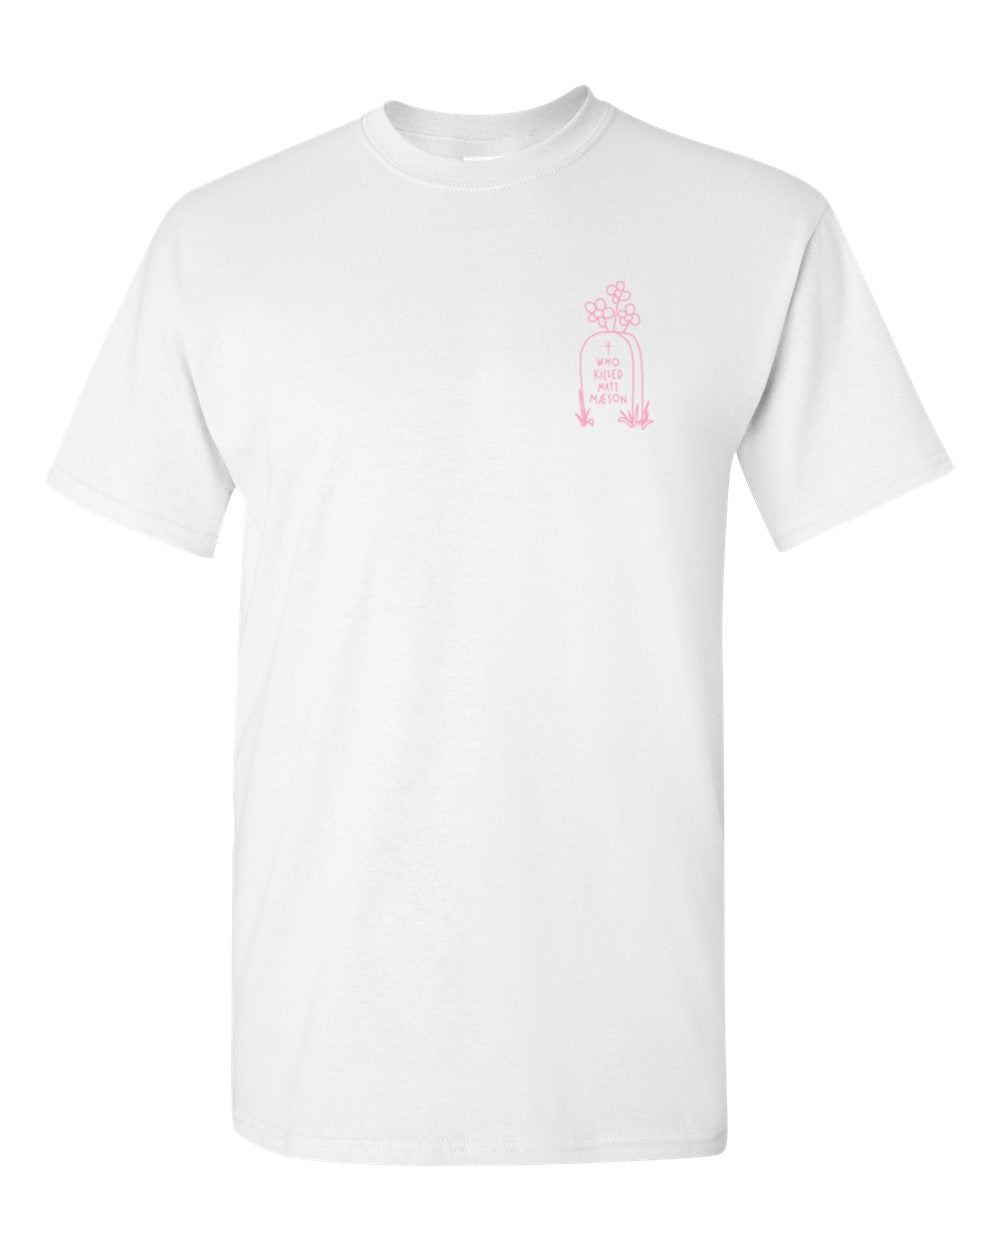 Gravestone Shirt (White)